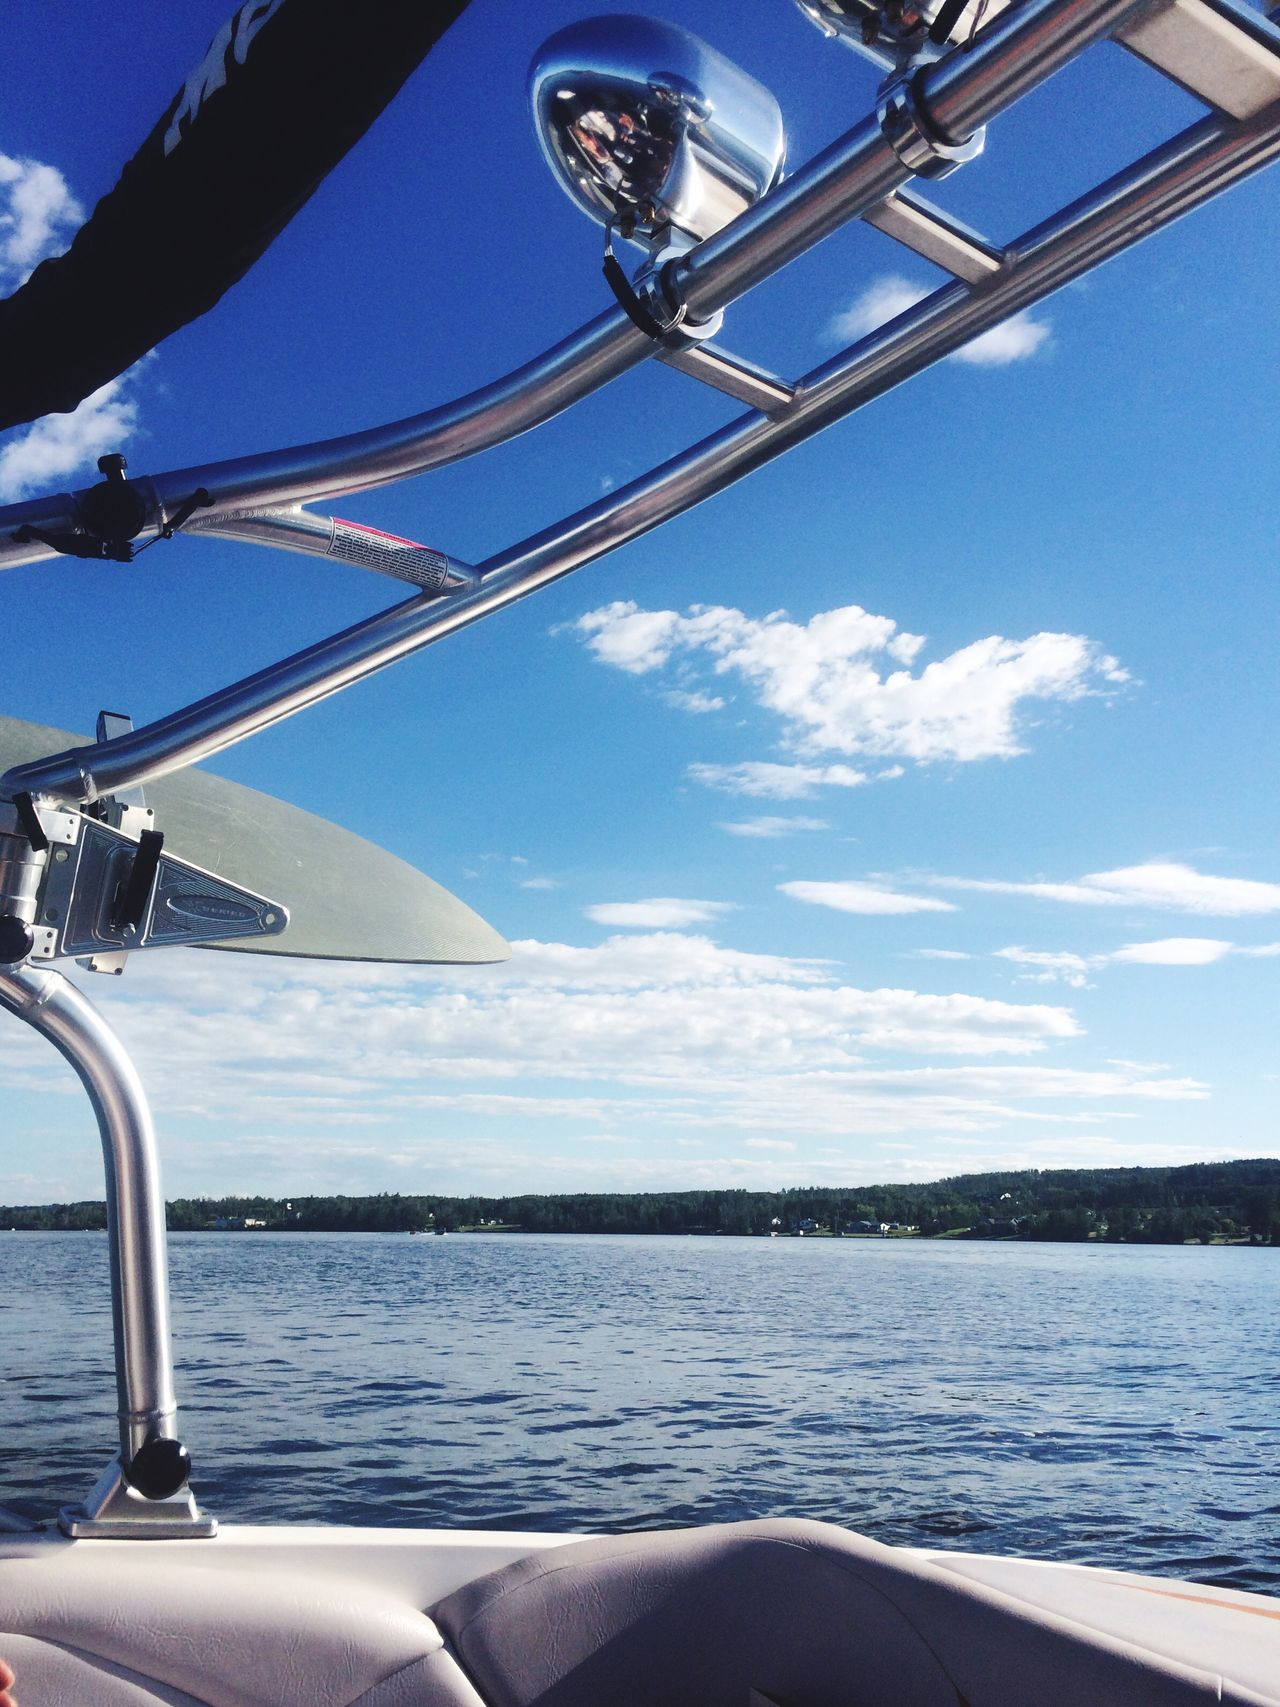 Just love surfing Canada Lake Lake View Blue Sky British Columbia Wakesurfing Wakeboarding Boat